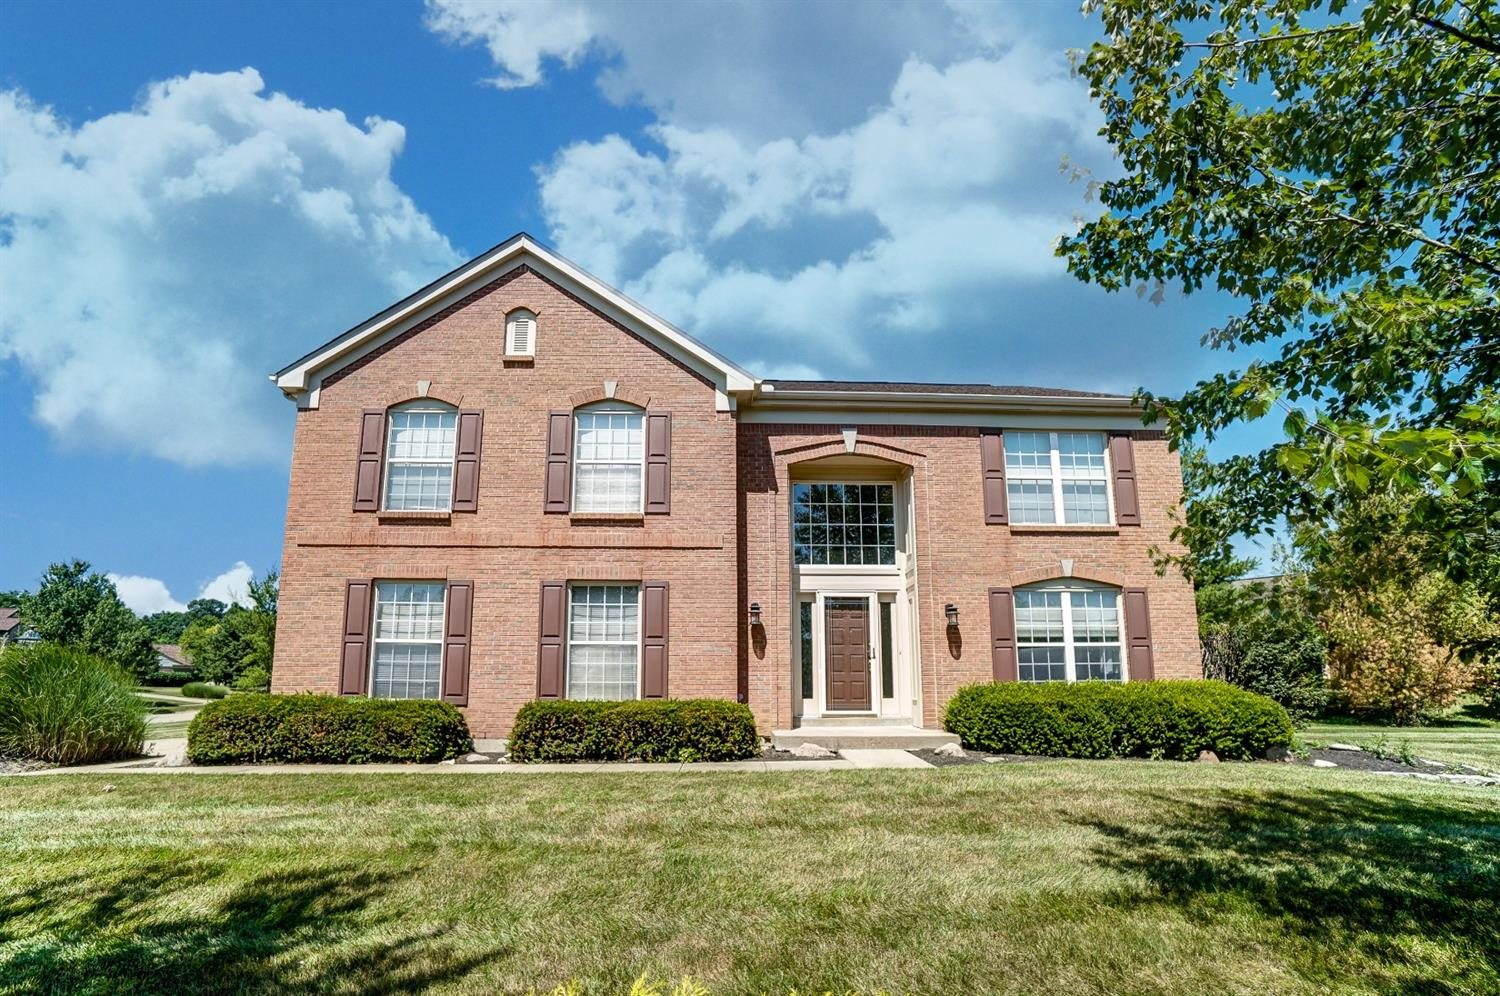 123 High Country Ln Loveland, OH